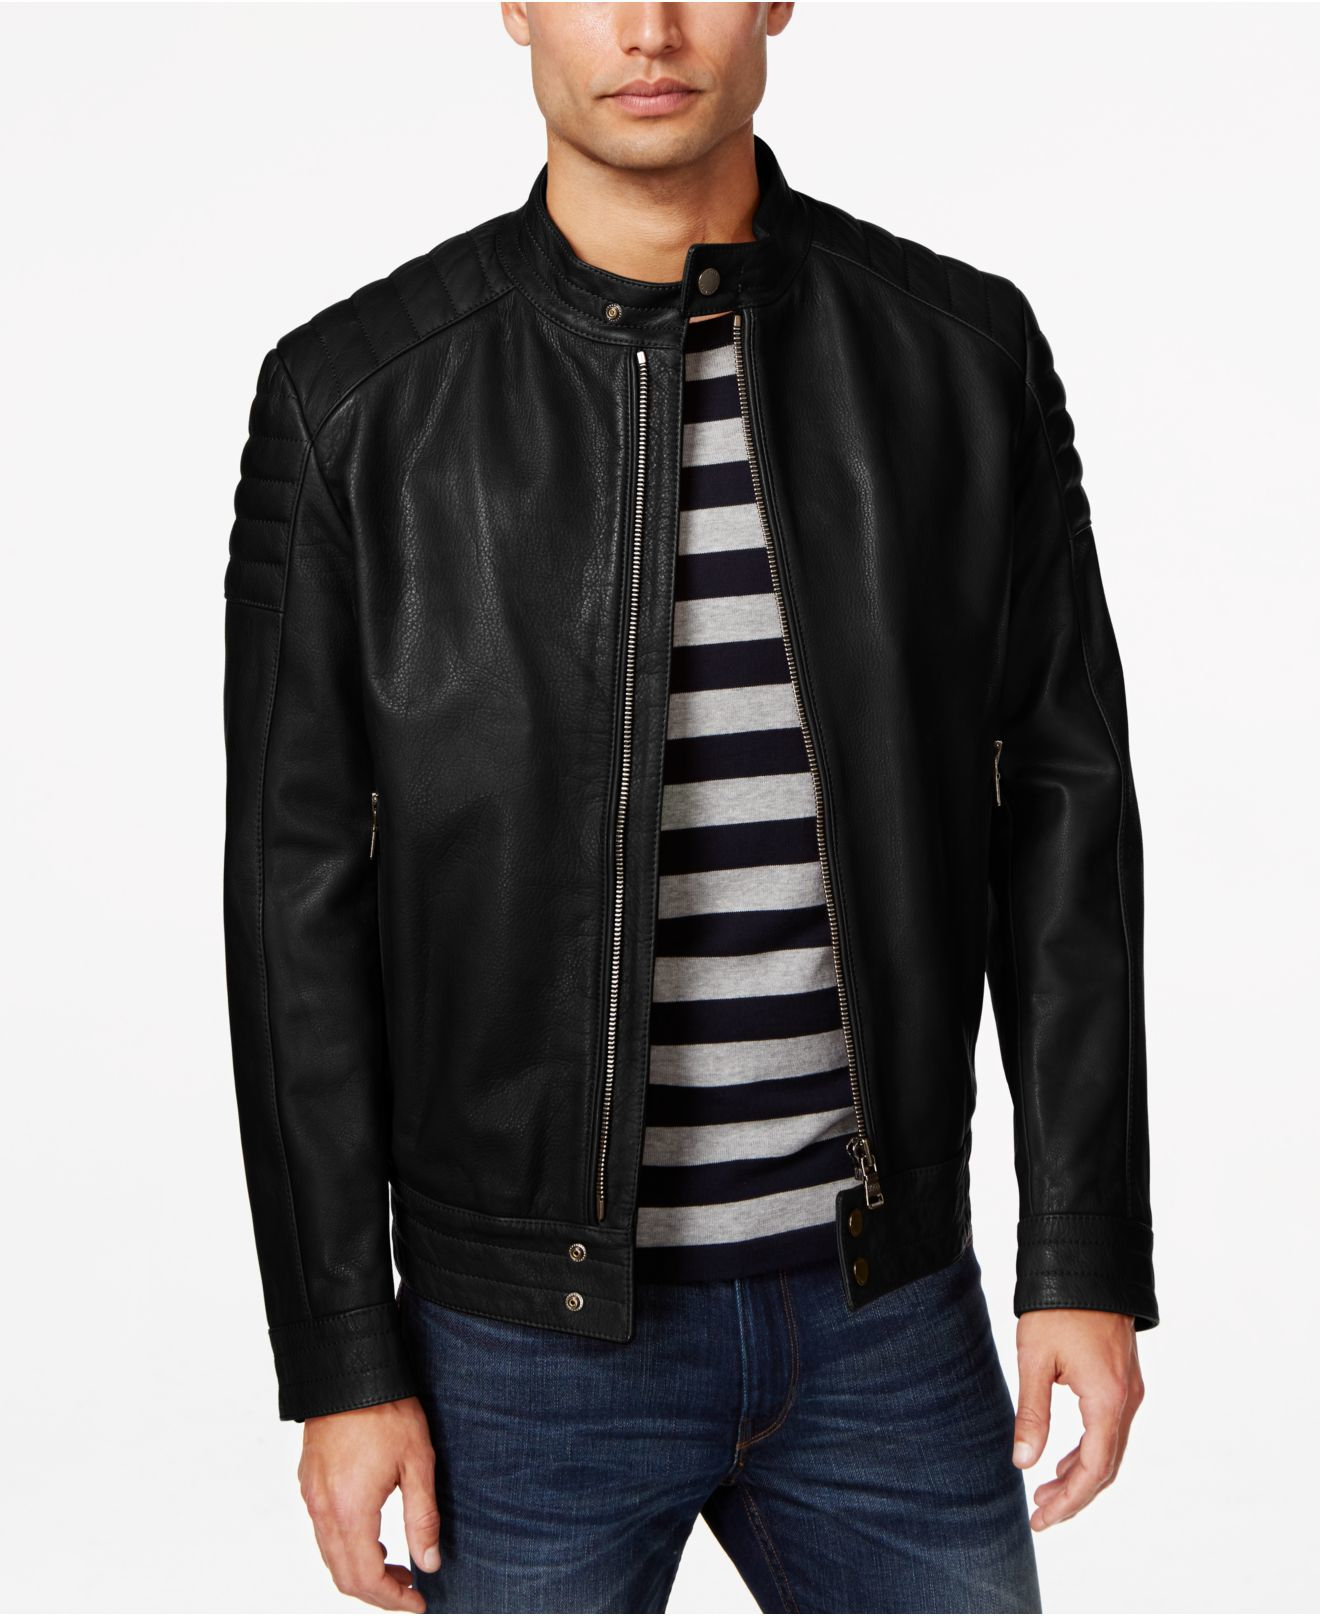 lyst boss black nupitz leather jacket in black for men